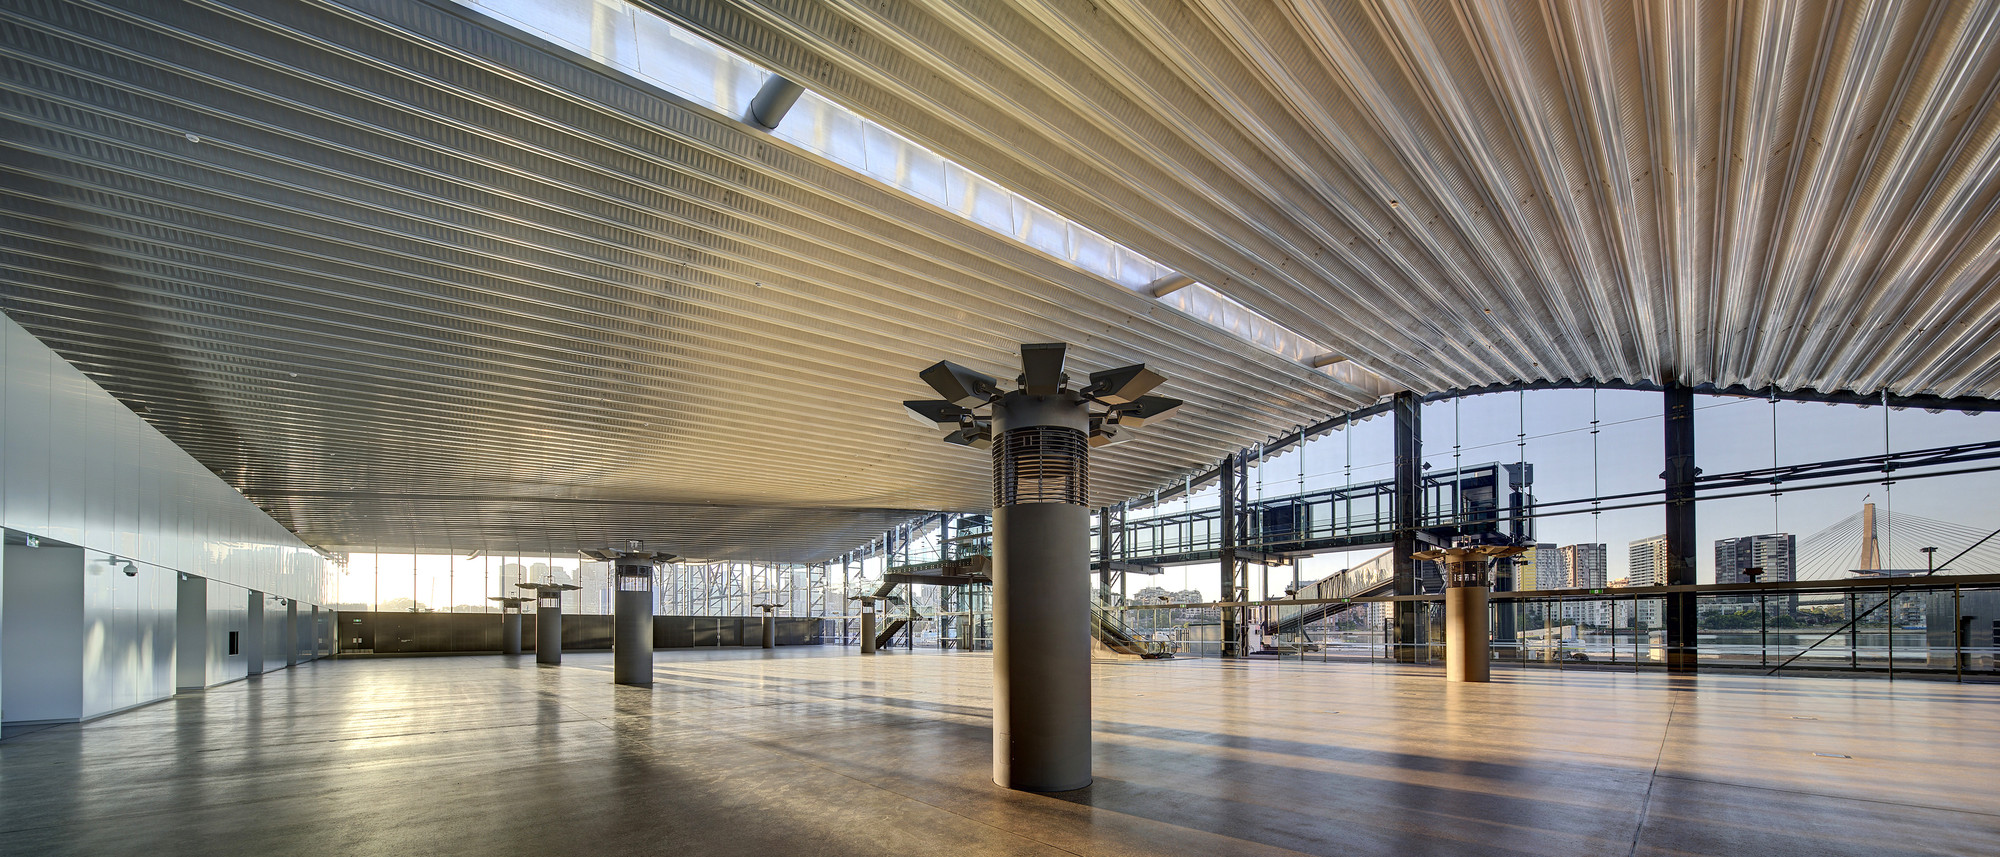 Australian institute of architects announce 2014 national awards archdaily - Bay architecture ...